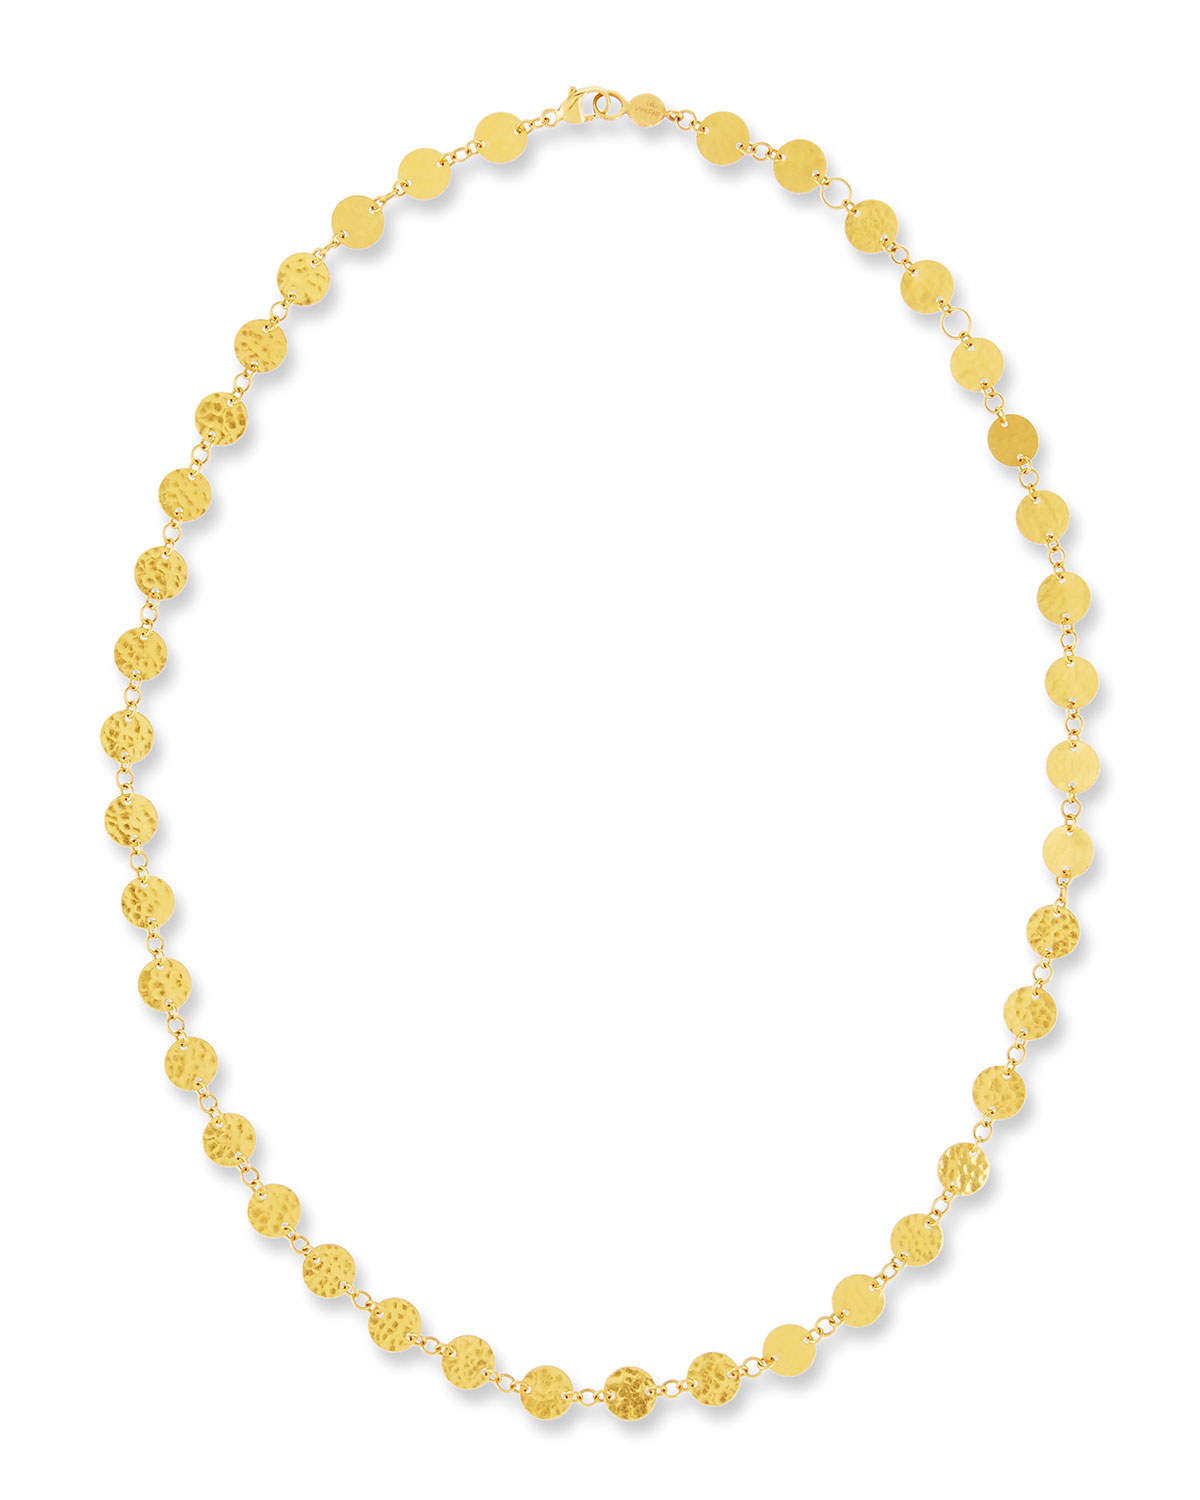 Single Short Lush Necklace in 24K Gold